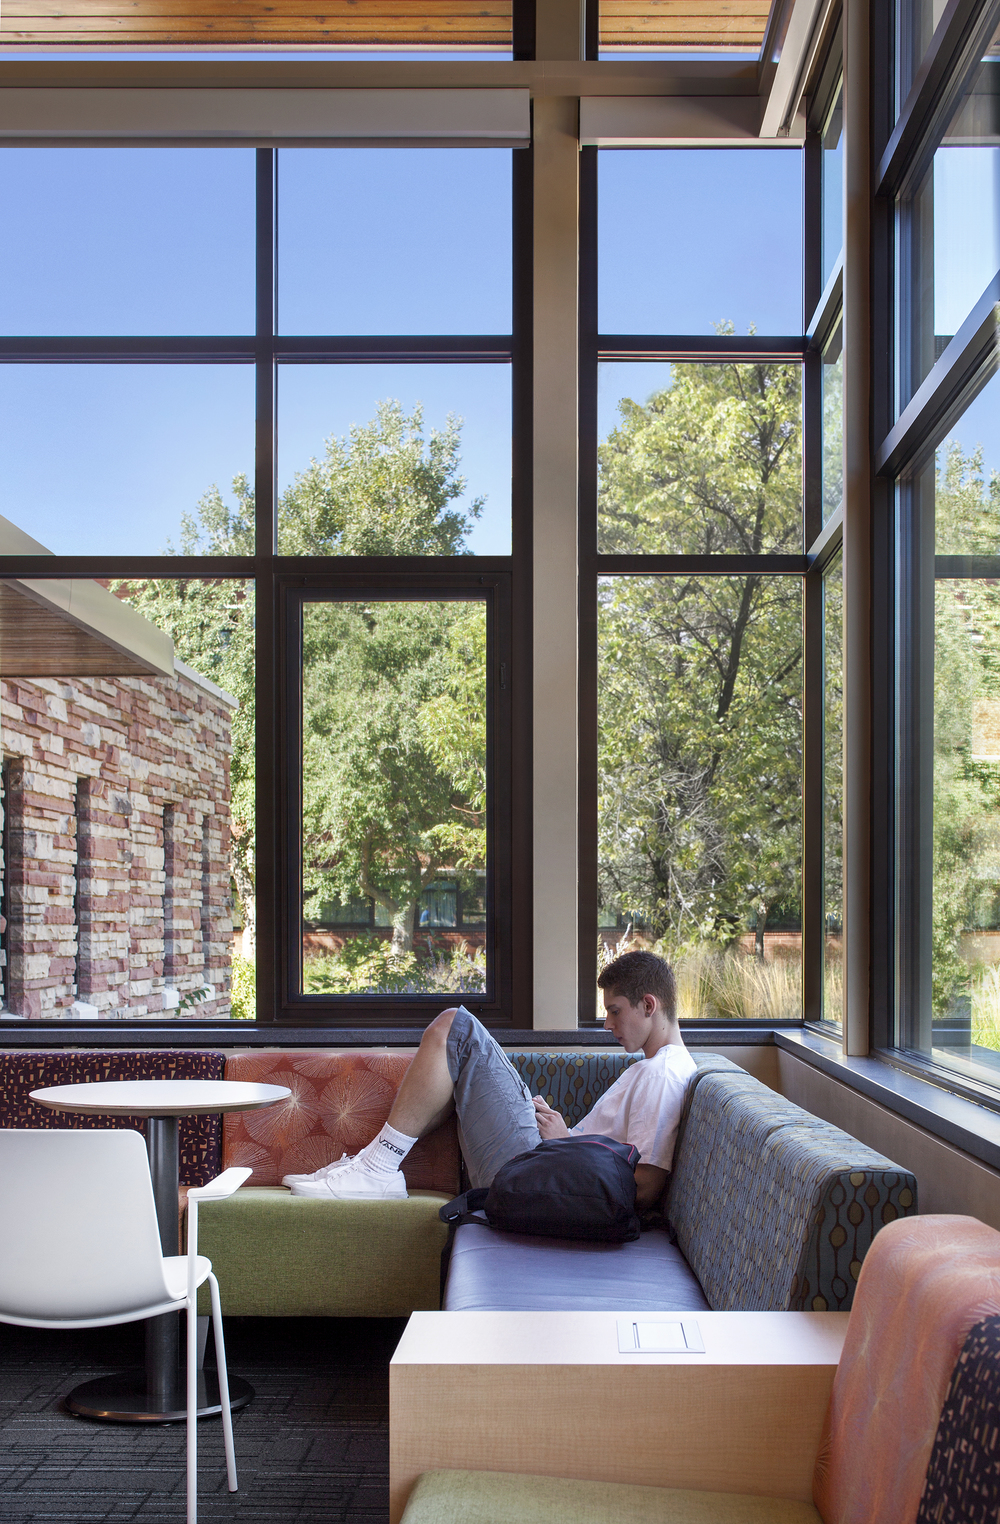 colorado_state_university_fort_collins_braiden_hall_window seat.jpg